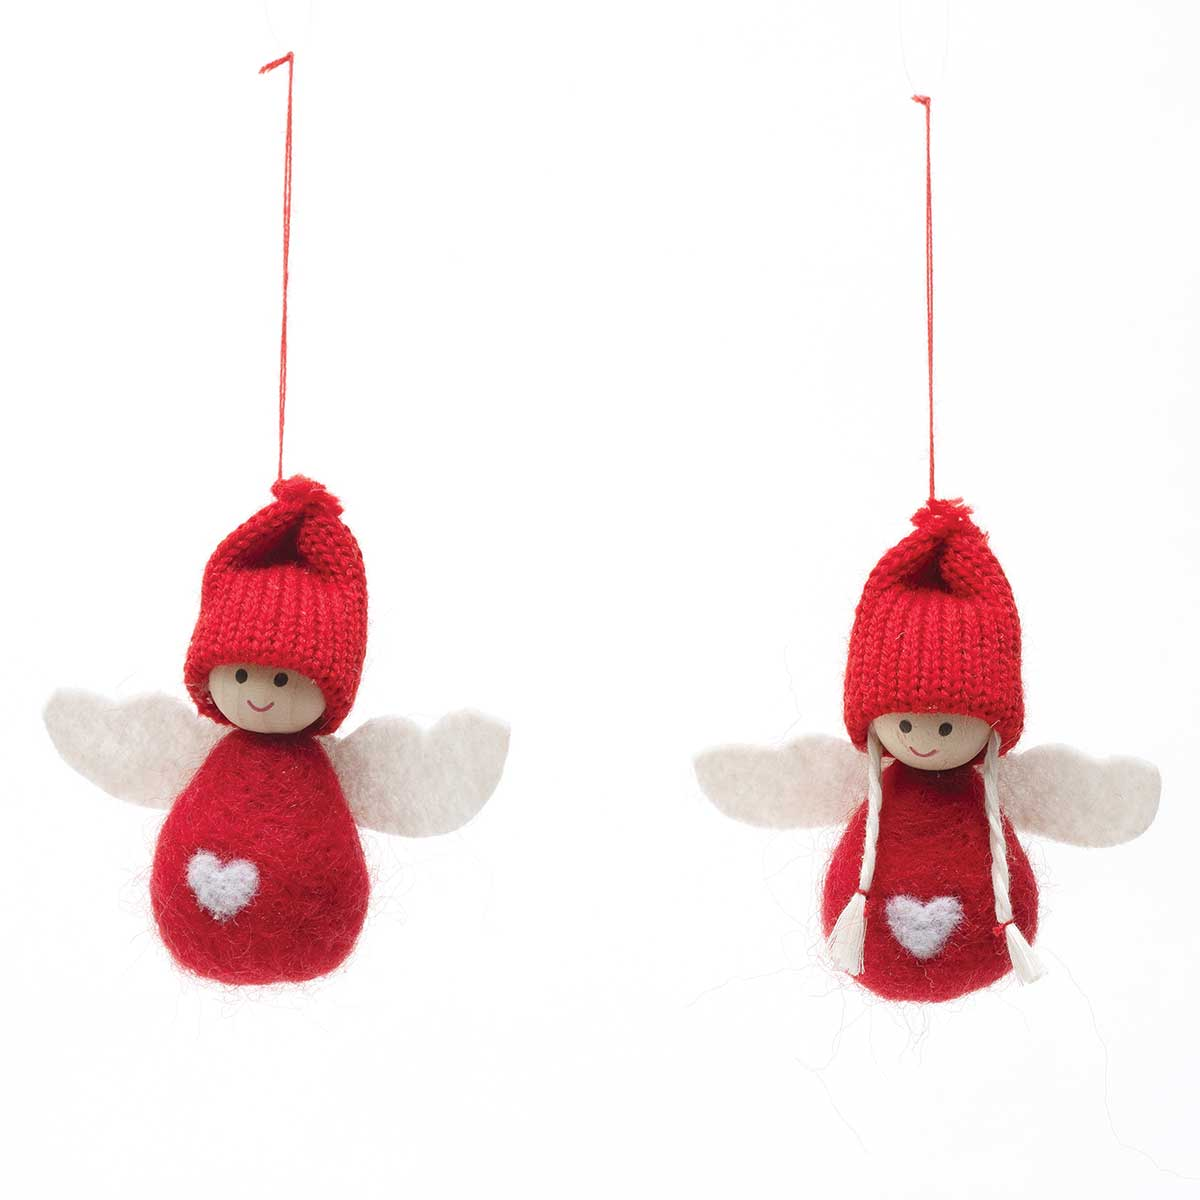 RED ANGEL ORNAMENT WITH HEART